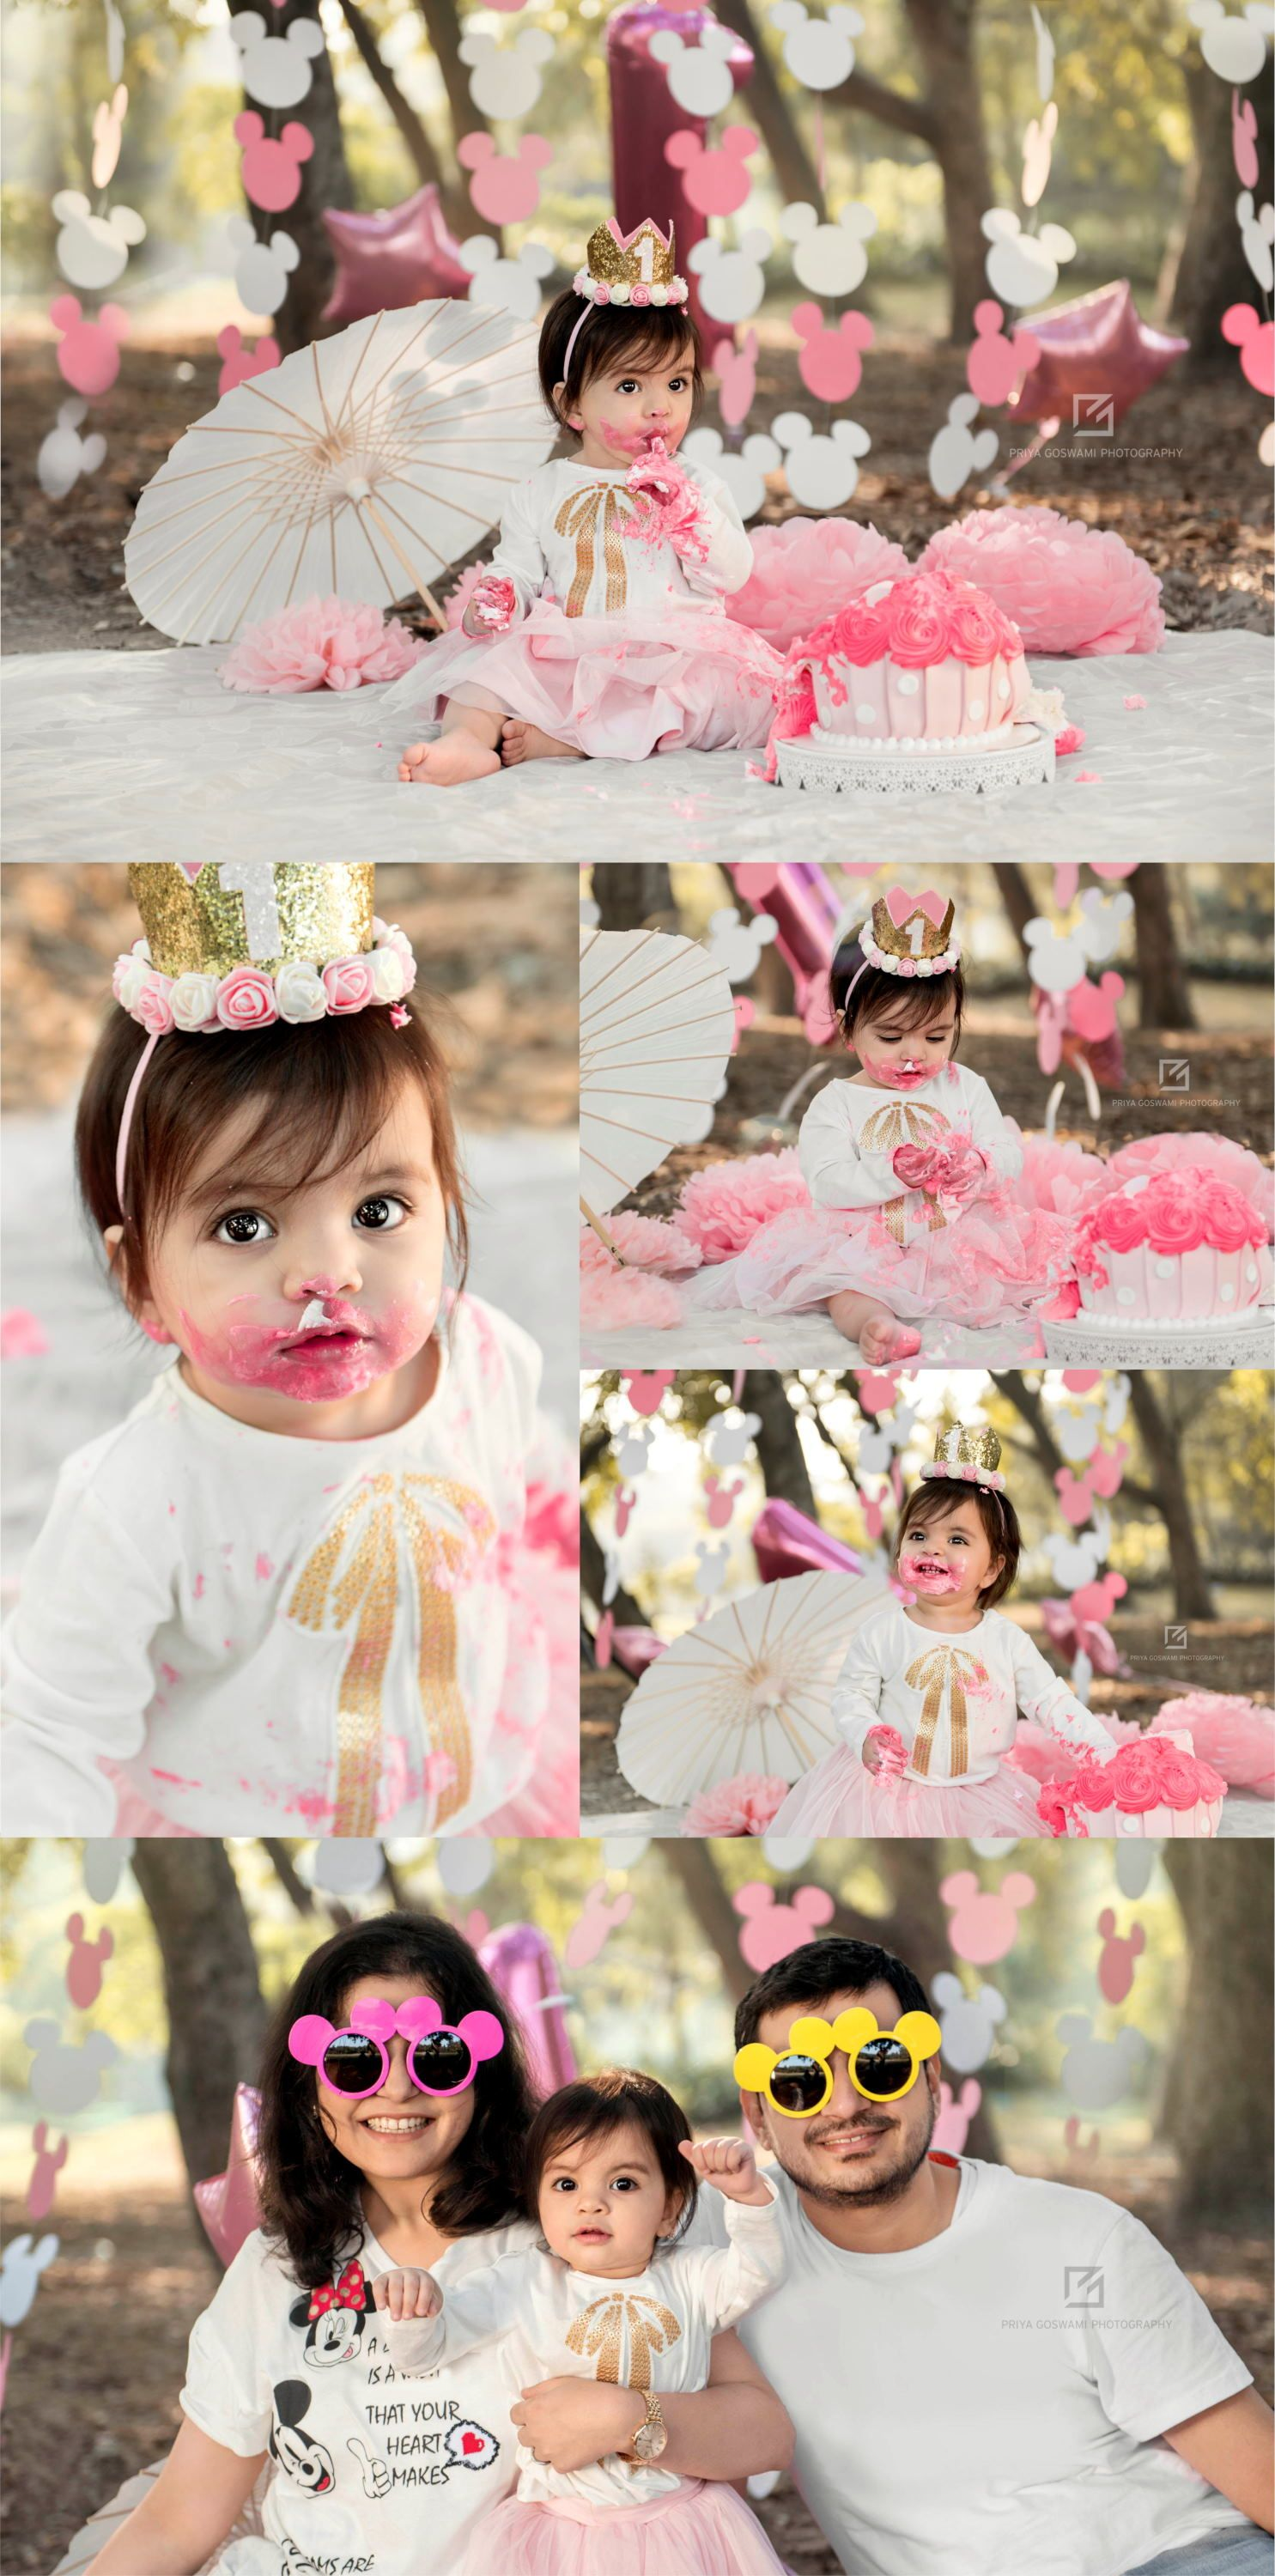 Minnie Mouse Themed Cake Smash Session With Images Smash Cake